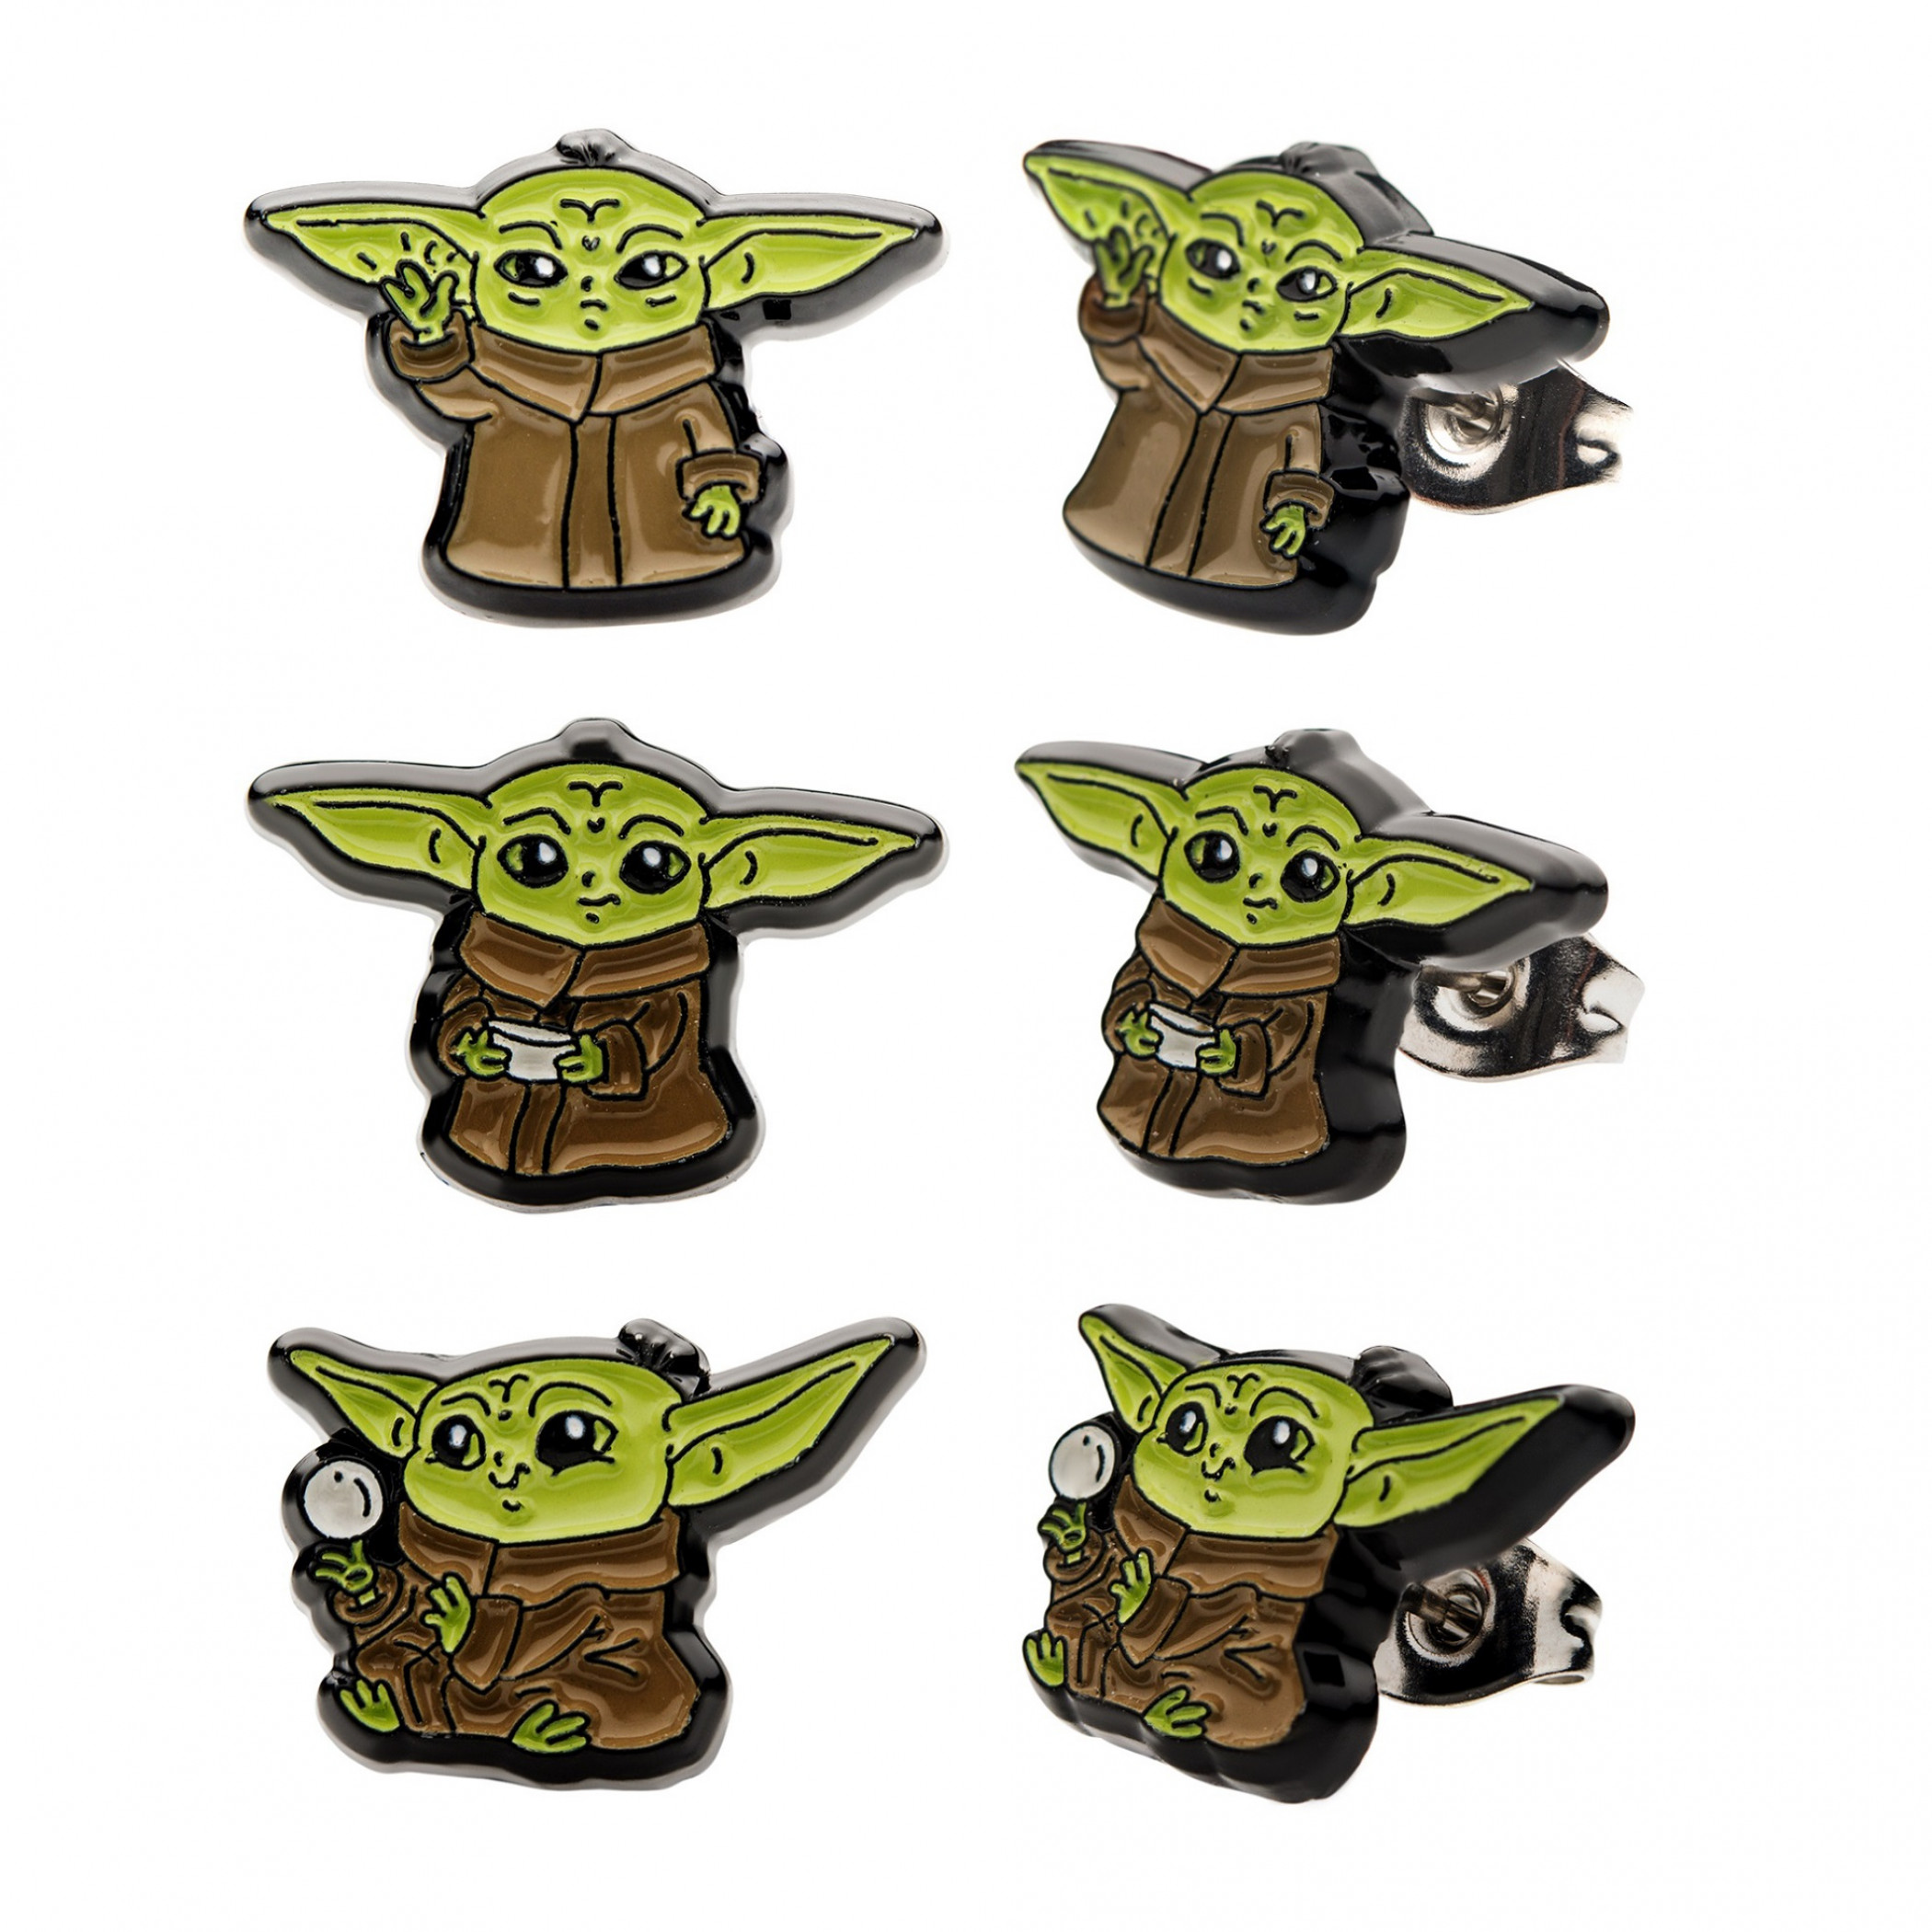 Star Wars The Mandalorian 3-Pack of The Child Earrings